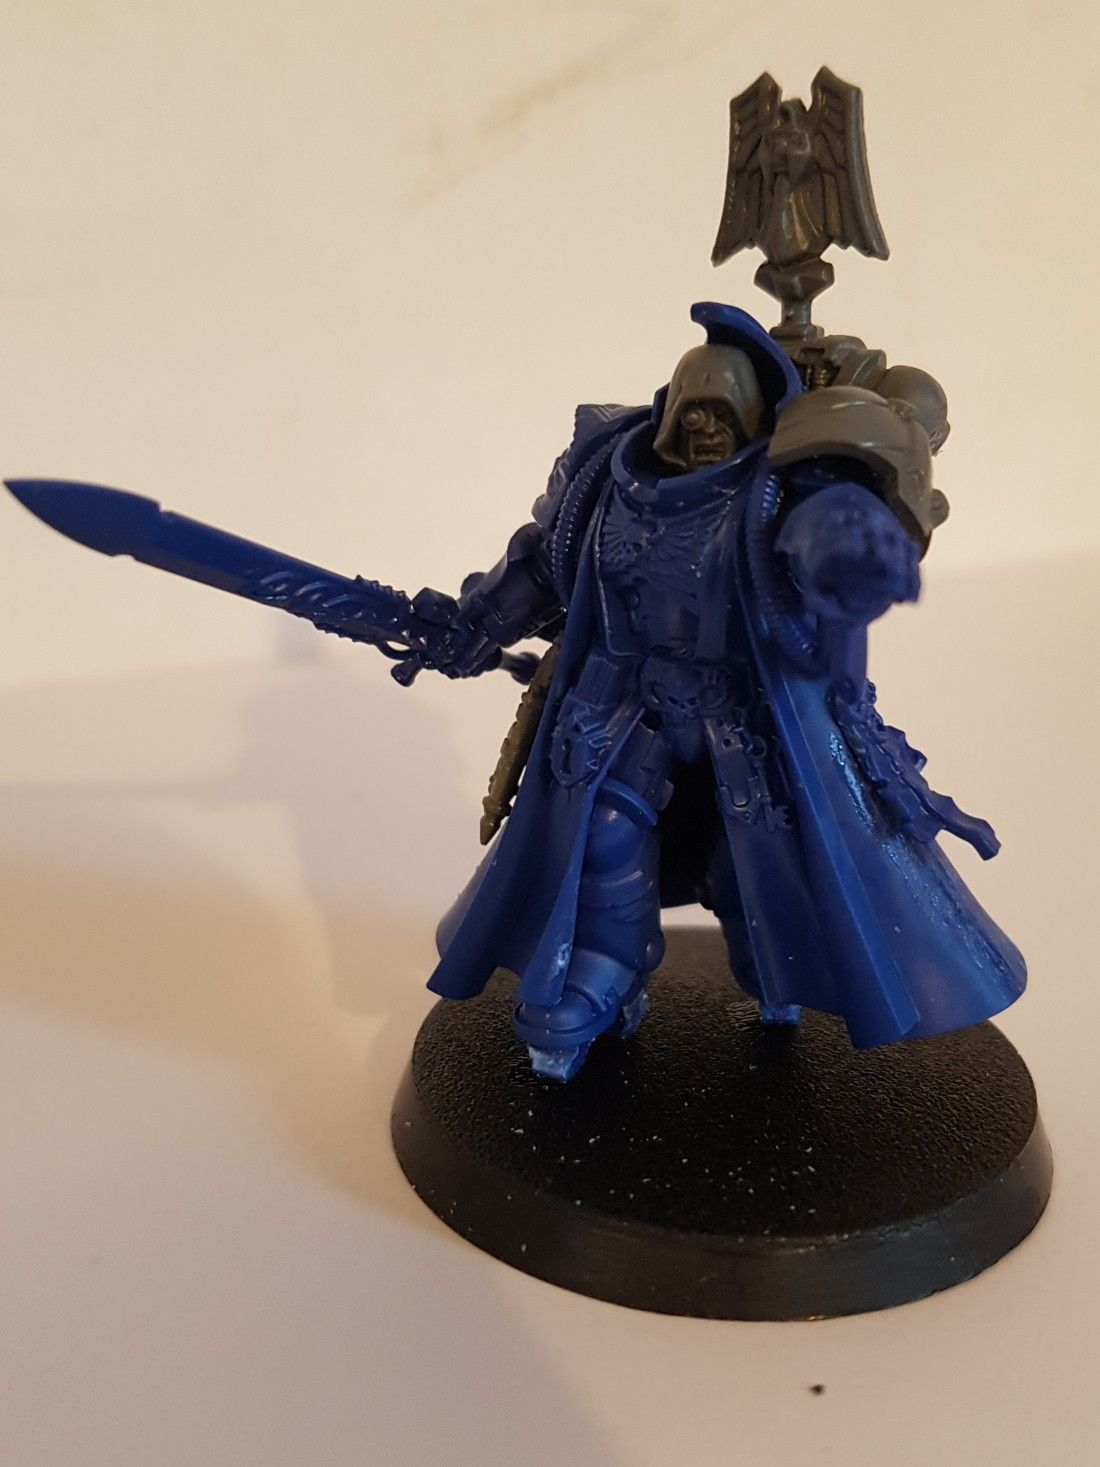 Dark Angels Primaris Librarian  Upgrades on this model are